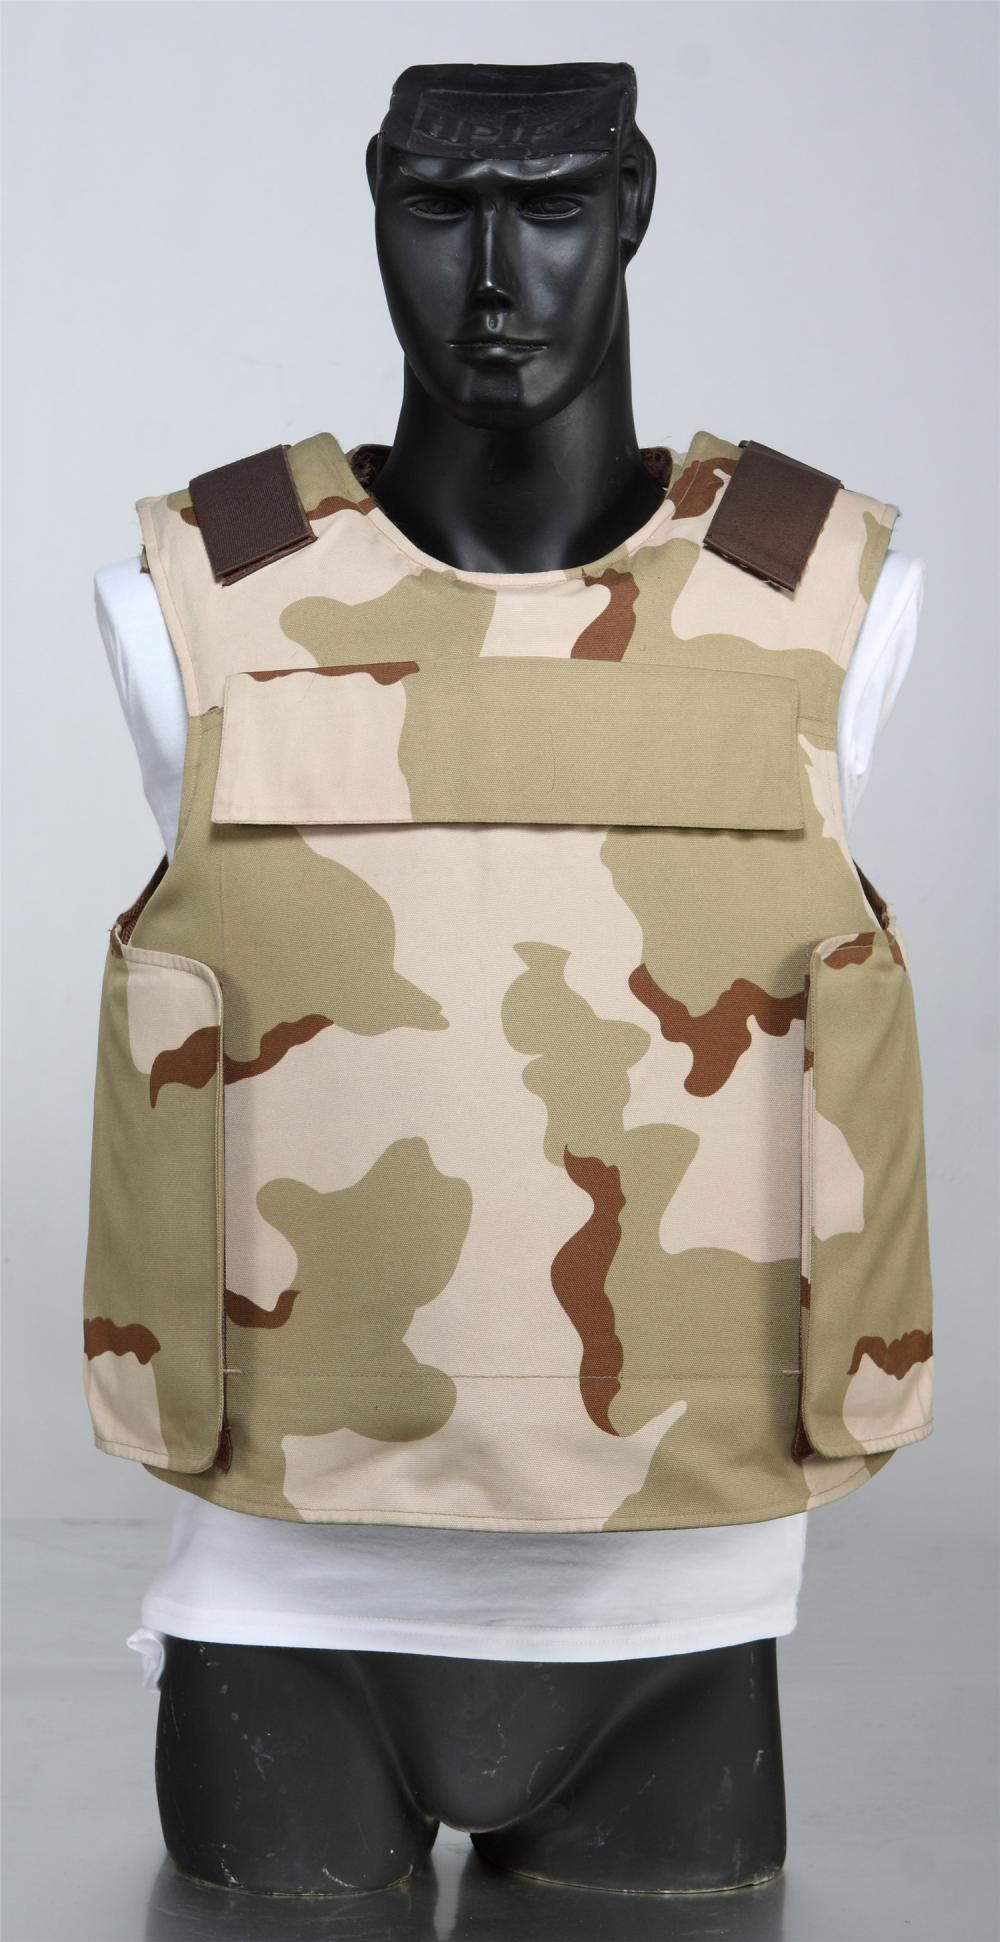 Against 7.62mm Body Armor